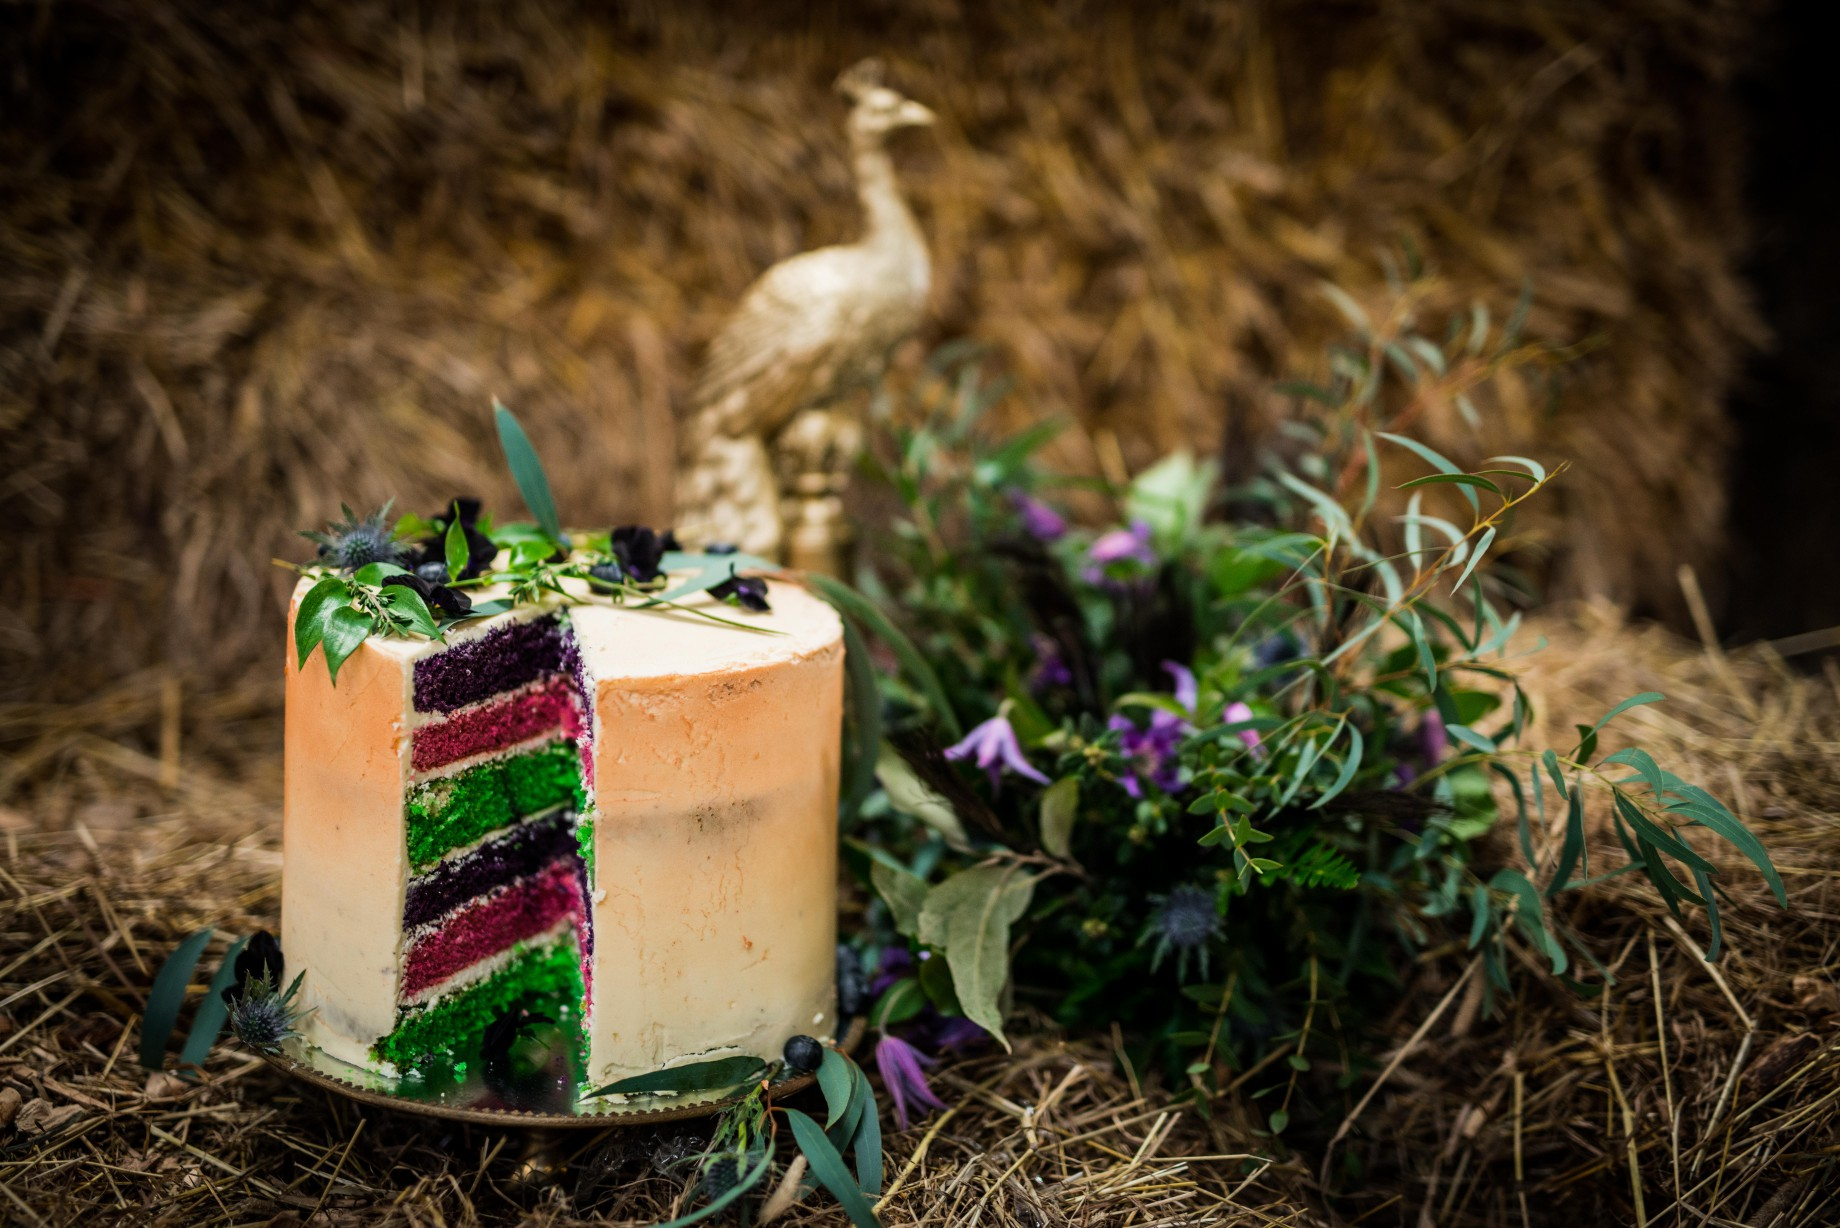 Peacock barns - alternative unconventional wedding photoshoot - rustic decadent - rainbow cake - gold